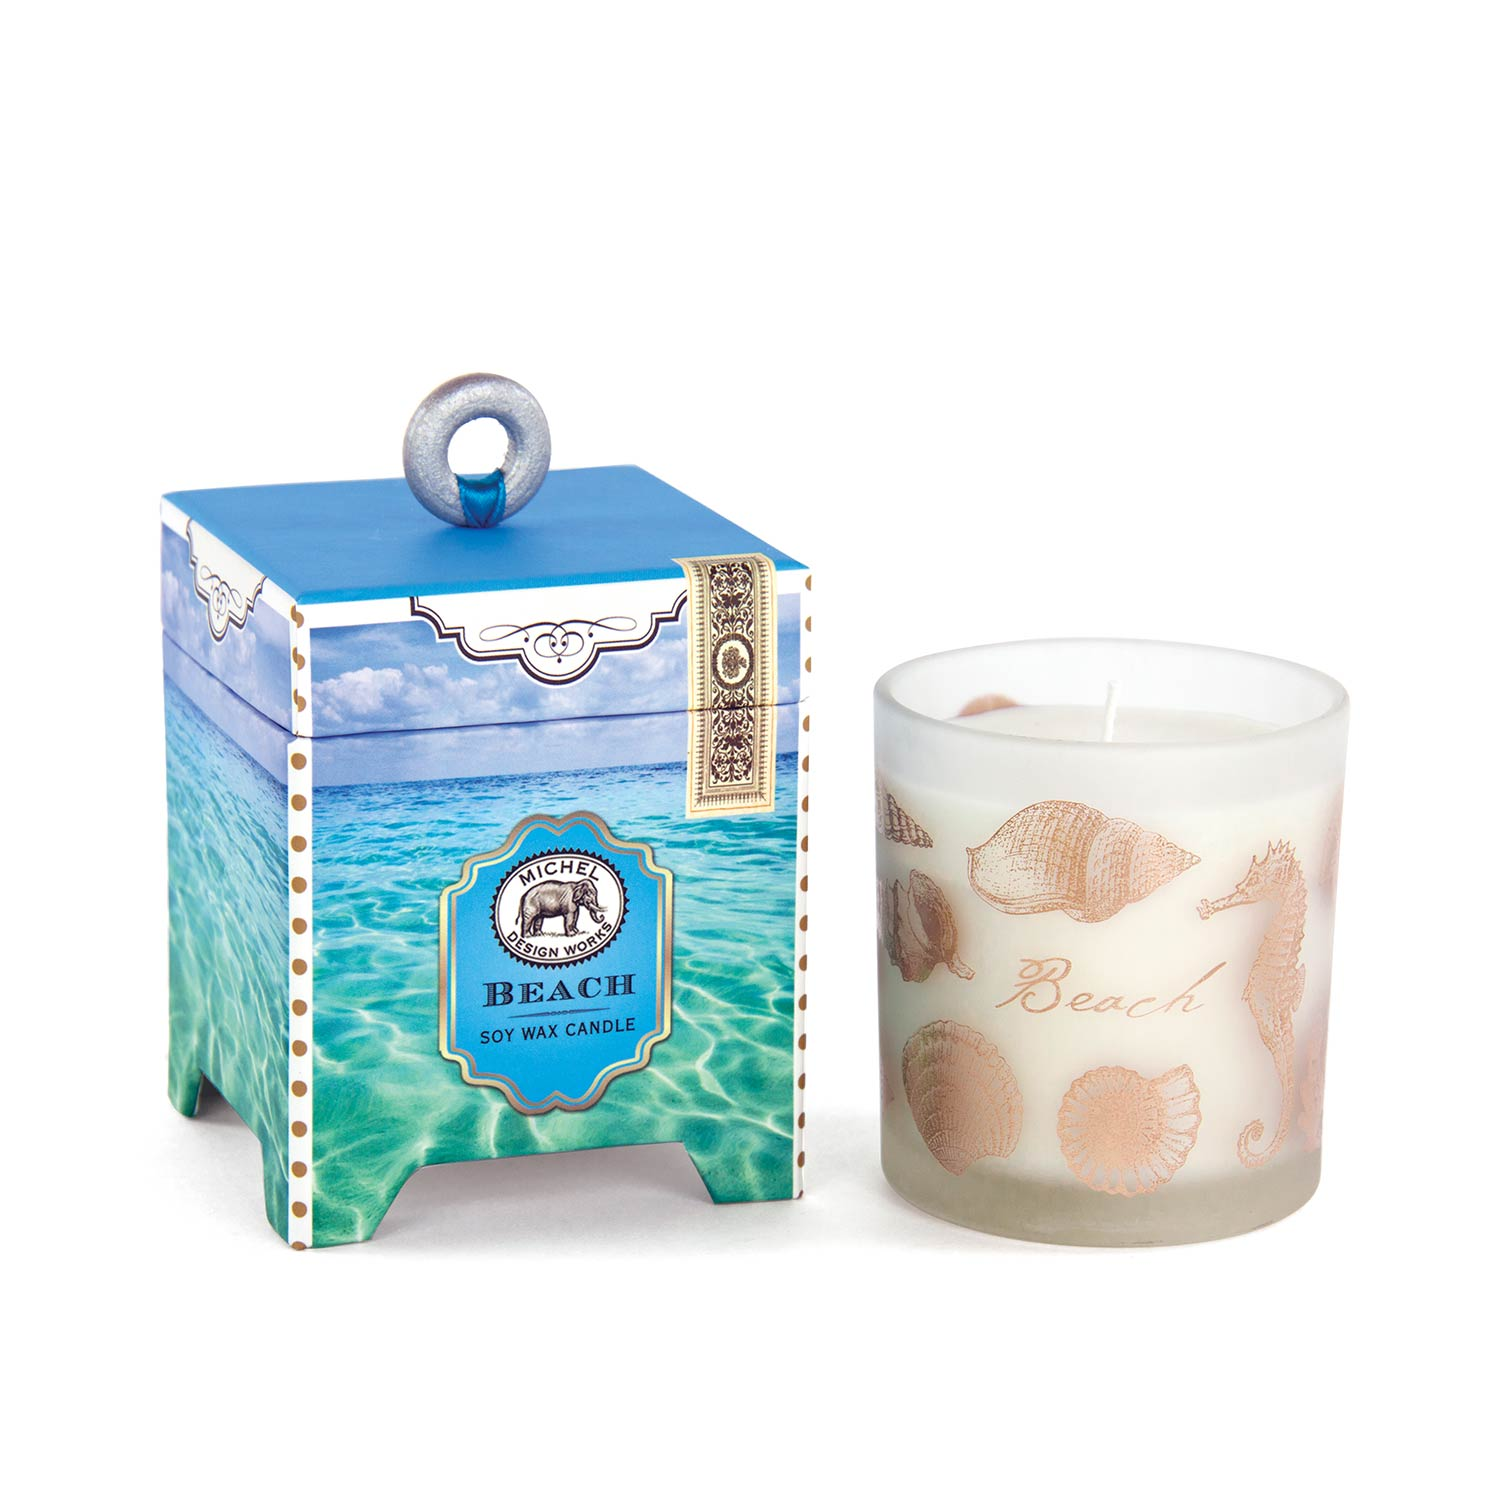 Beach 6.5 oz. Soy Wax Candle